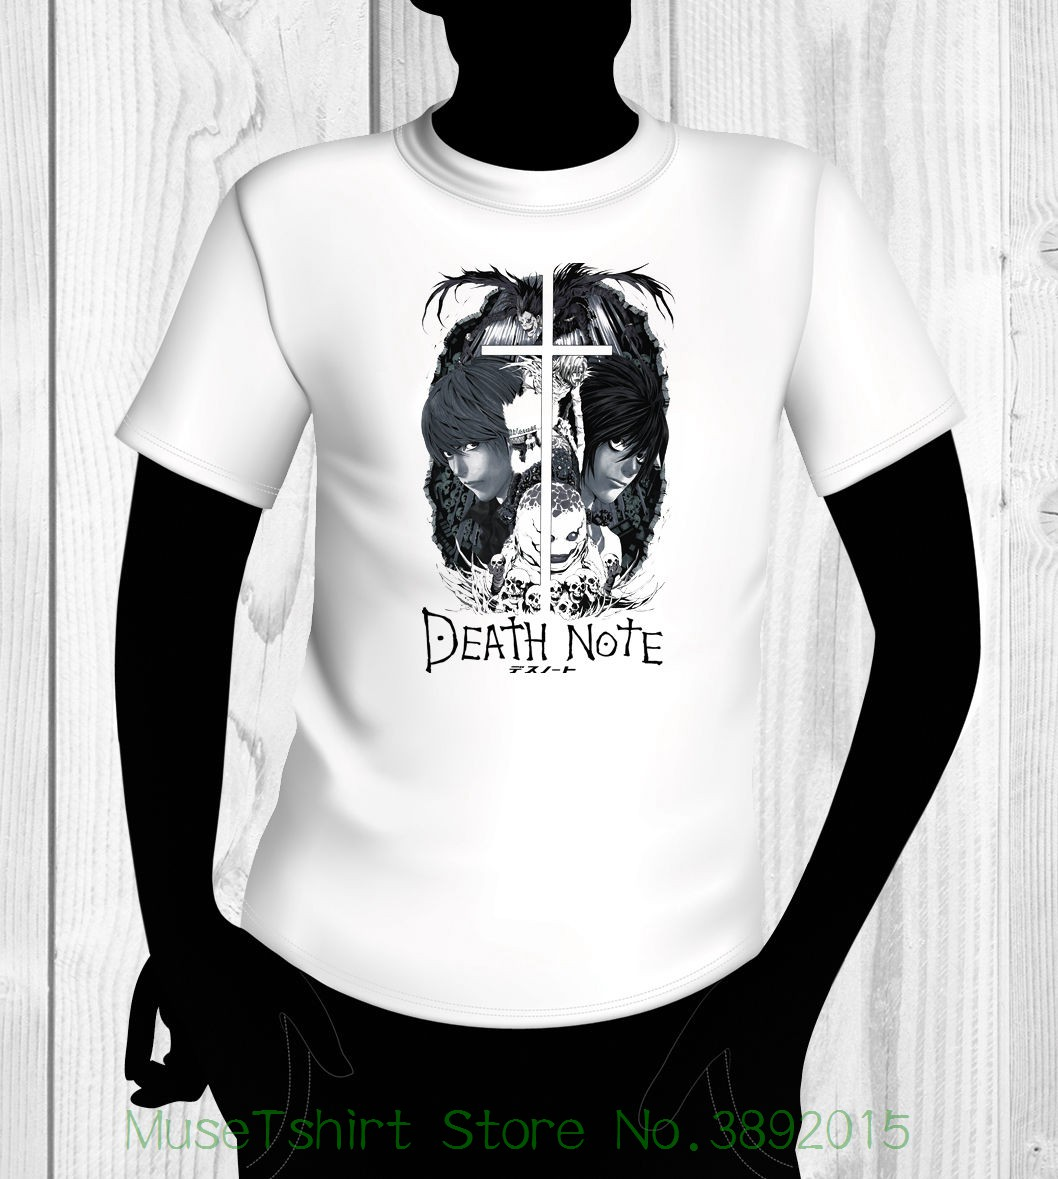 Death Note Shirt Usa Shipping 100% Cotton T Shirts Brand Clothing Tops Tees